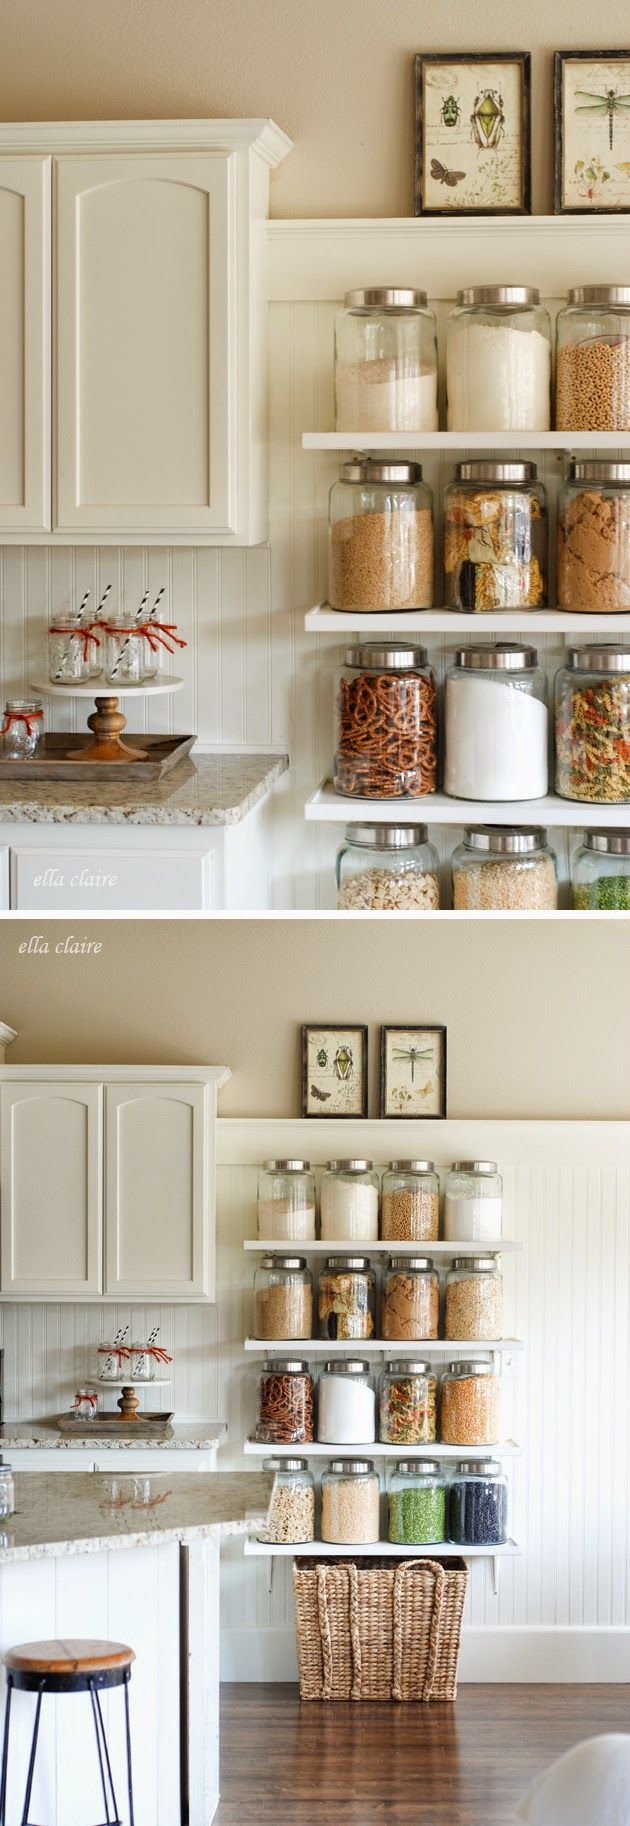 DIY Country Store Kitchen Shelves | Pinterest | Glass canisters ...